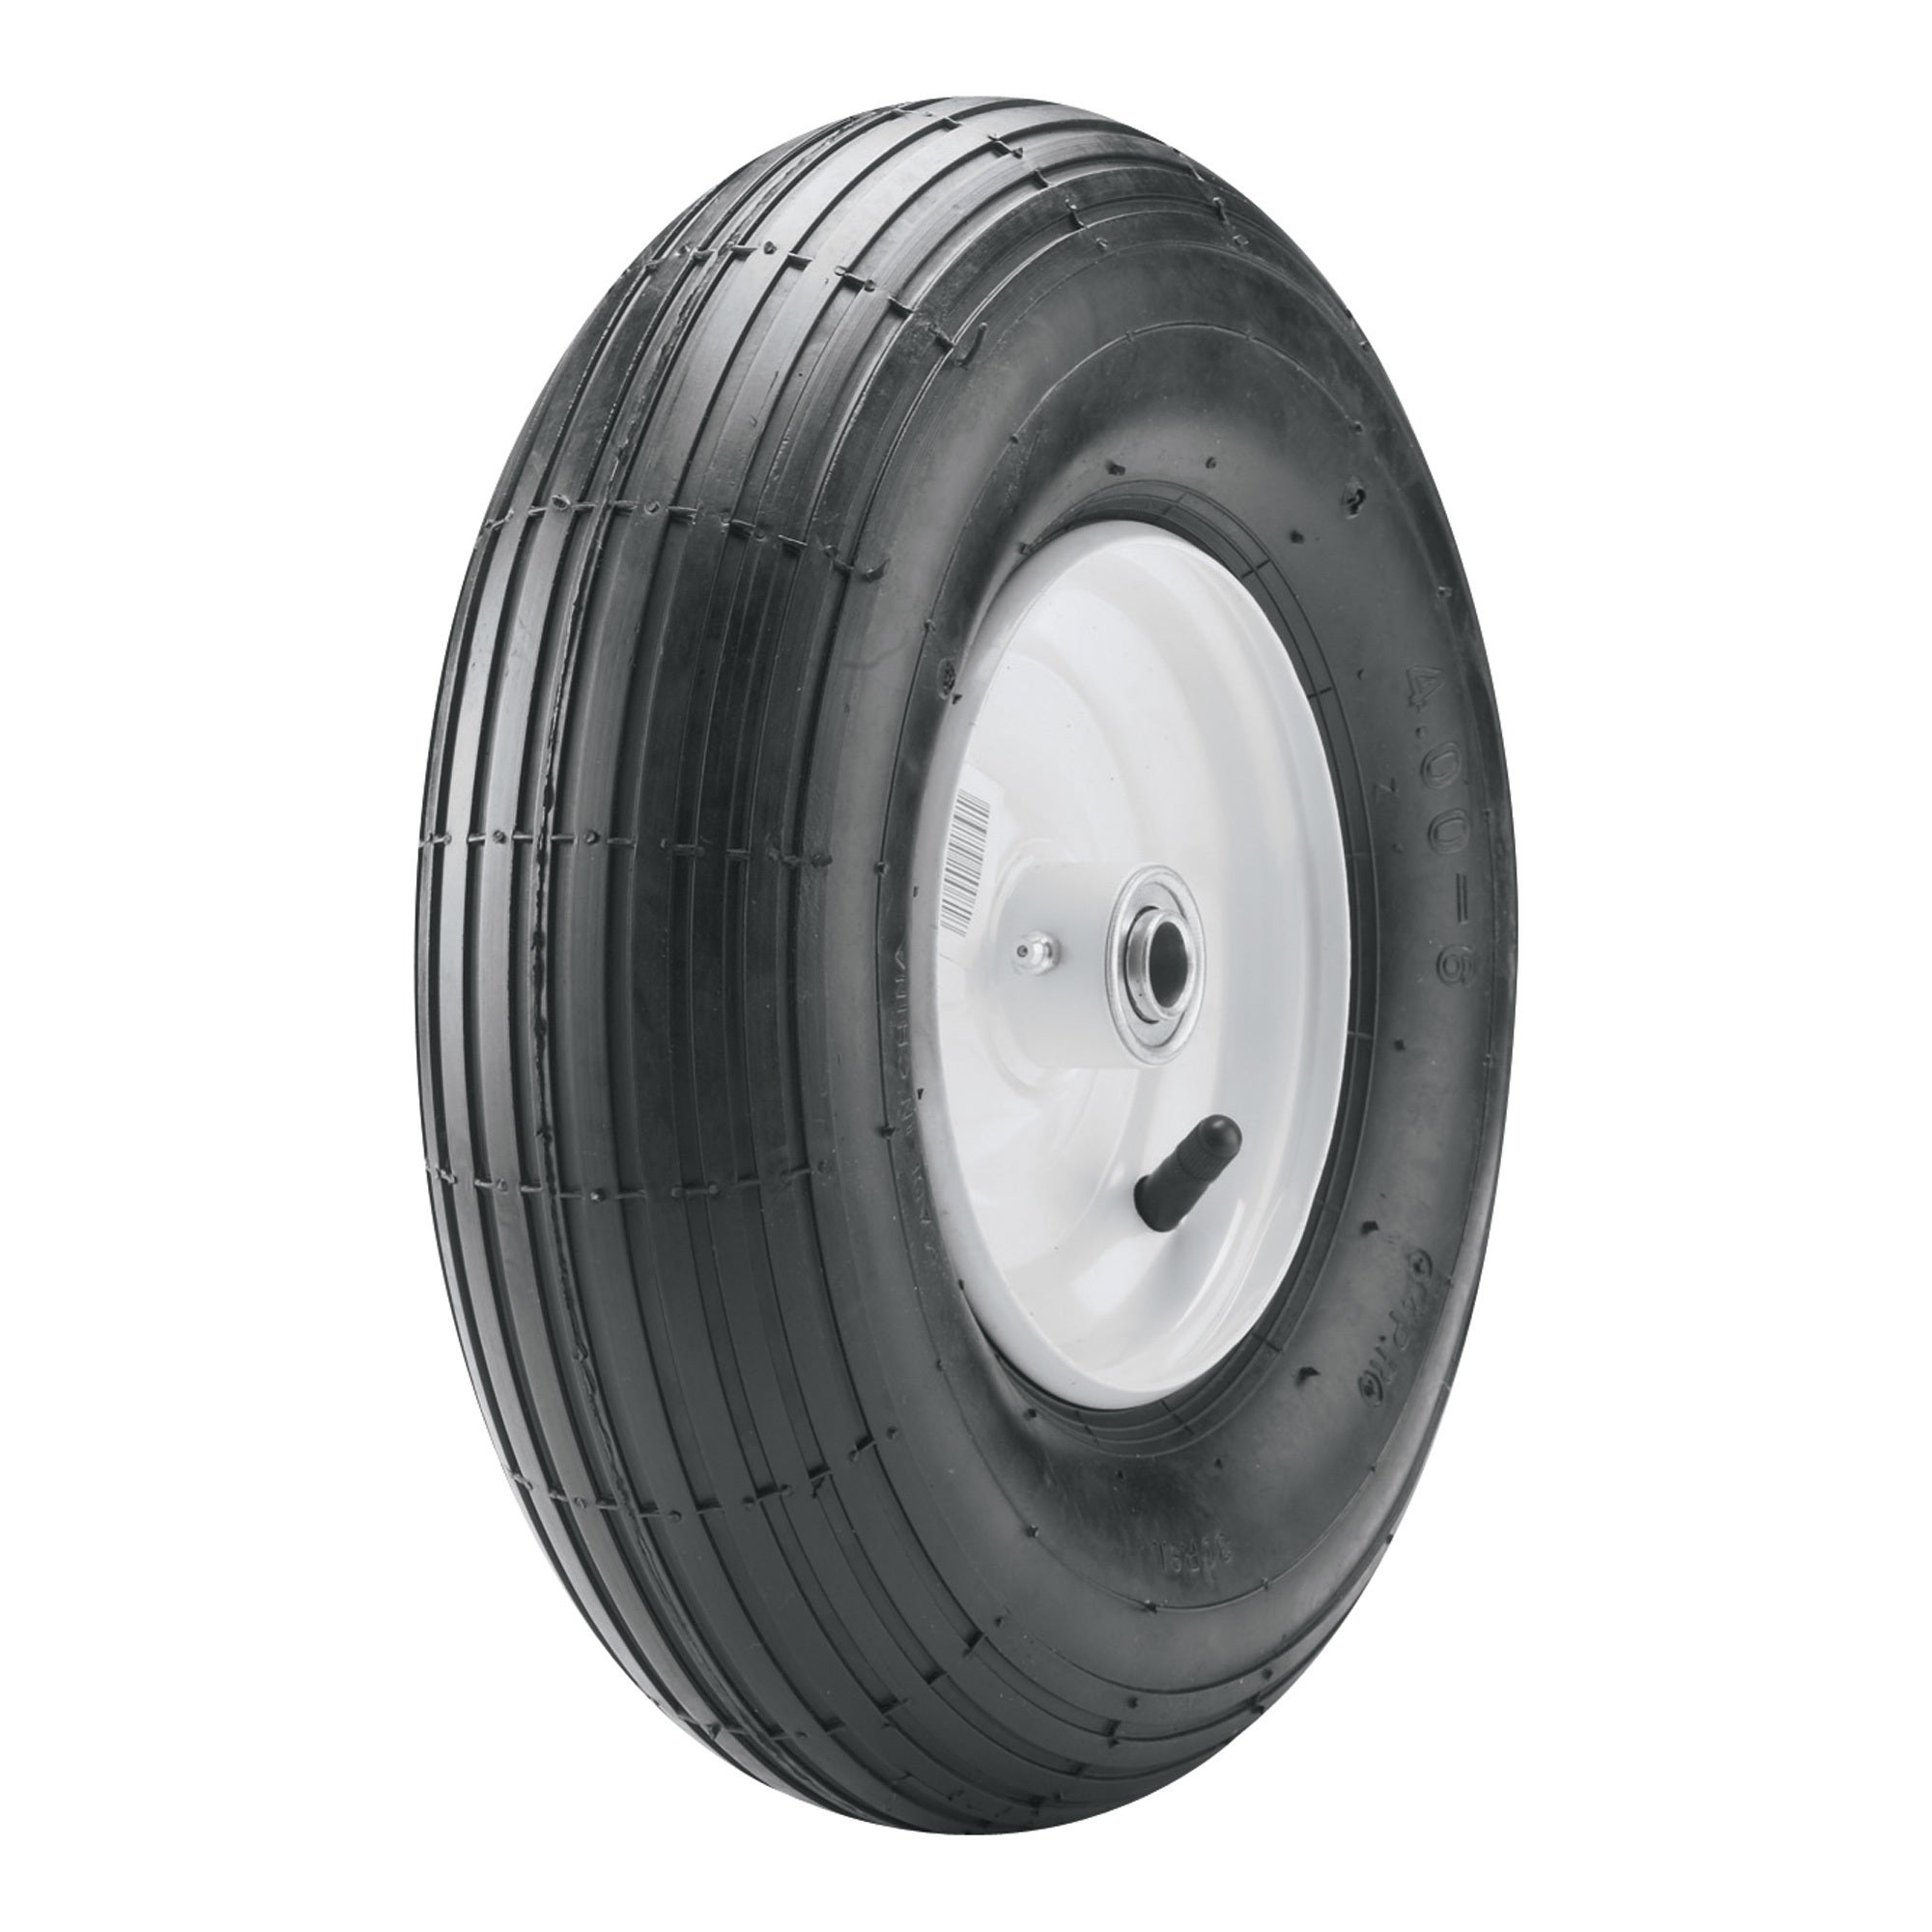 Carlisle Wheelbarrow Tire - 480-8 LRB/4 ply (Black) #5130511